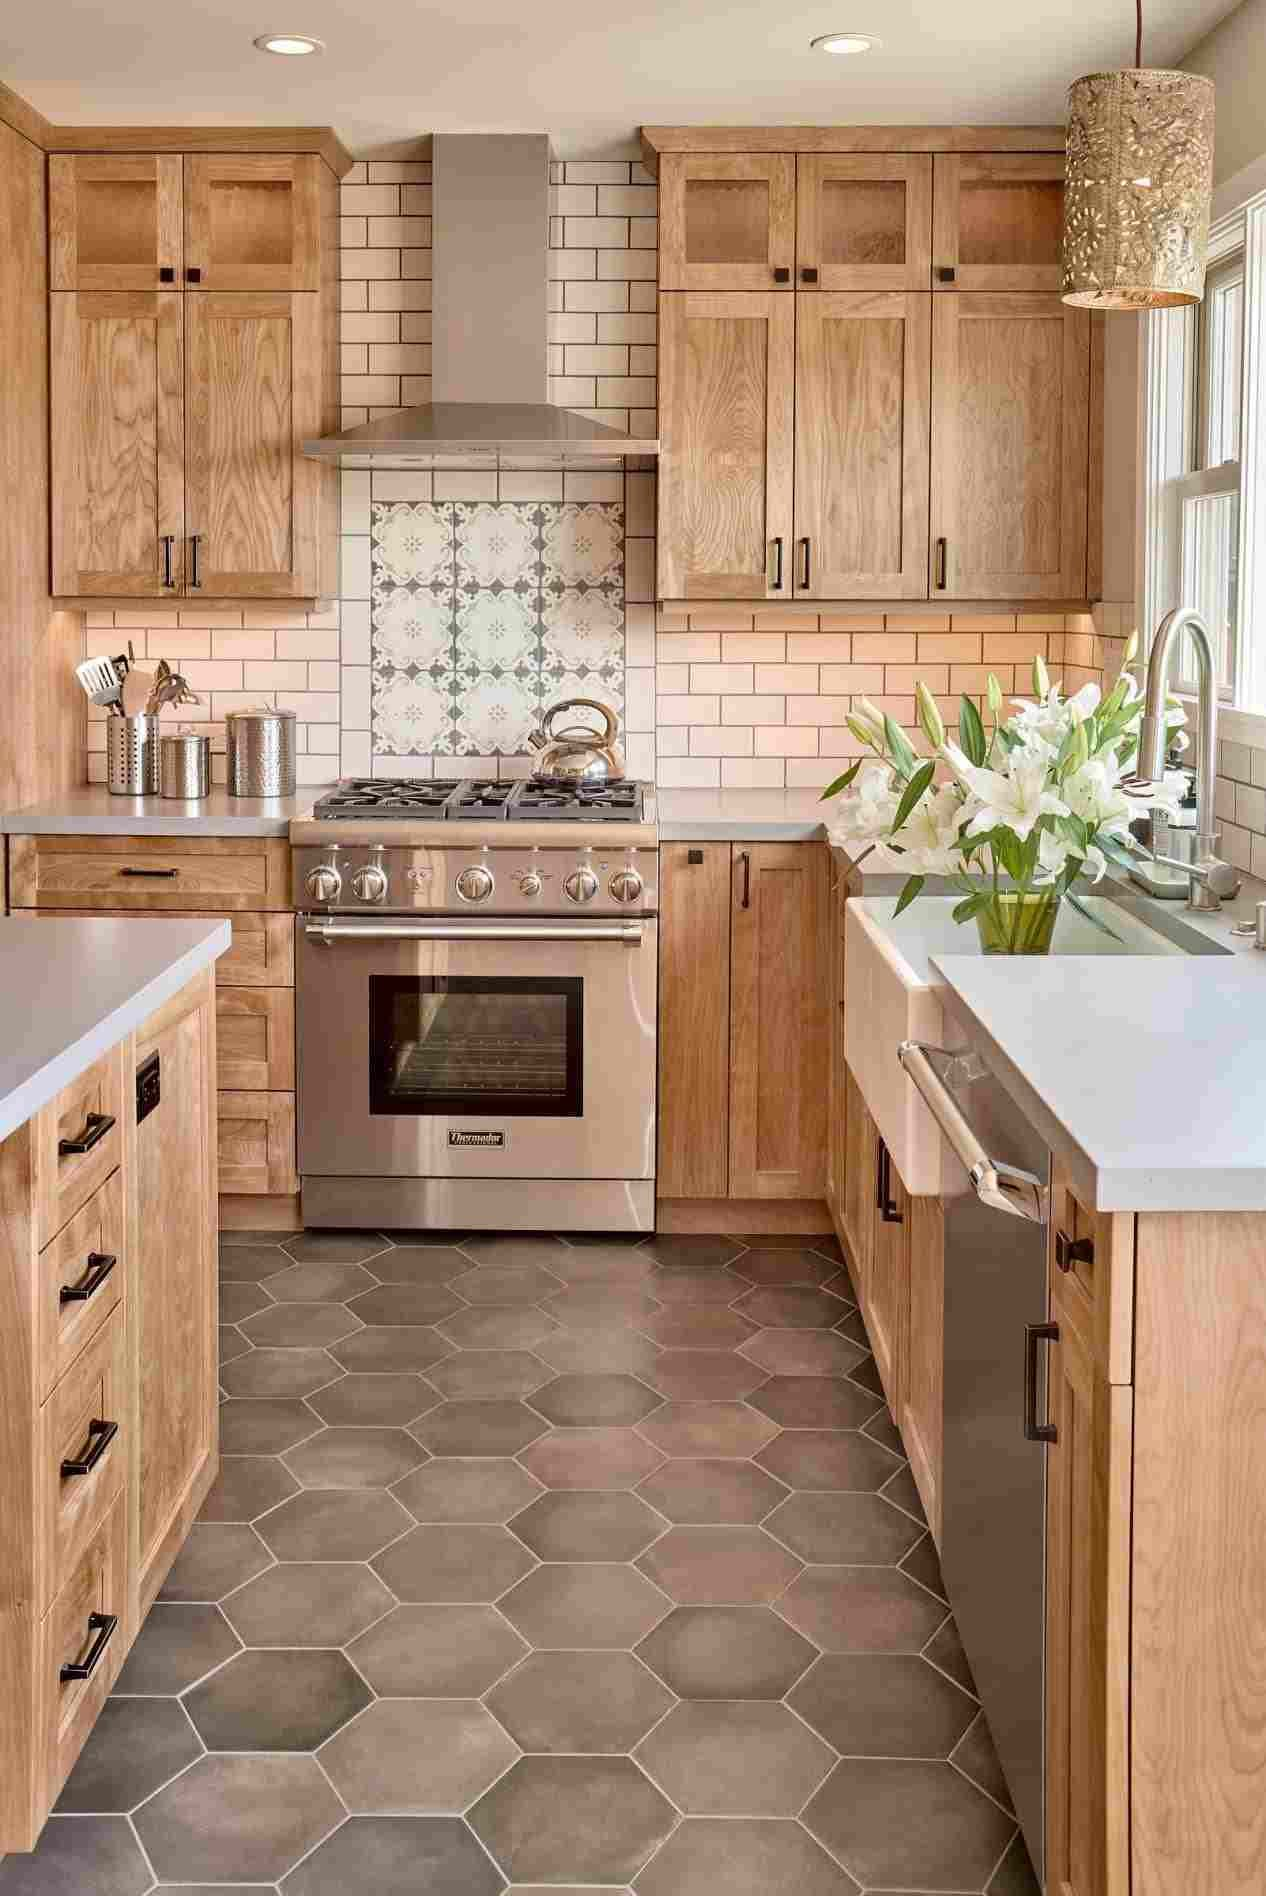 Lowe'S Mission Style Kitchen Cabinets ... | Home decor ...